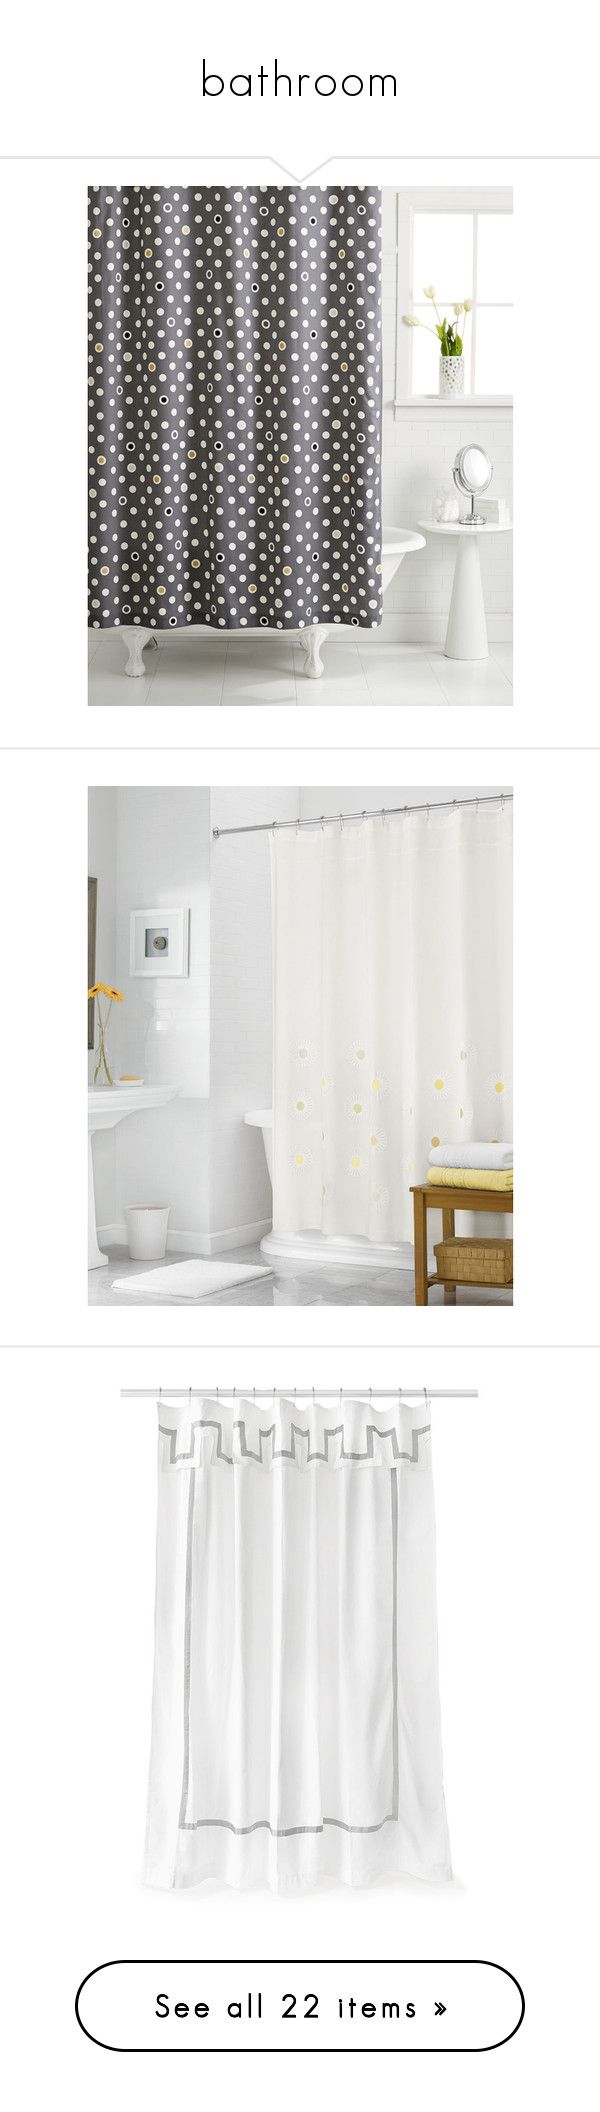 Gray and white polka dot curtains -  Bathroom By Hollyparrish2002 Liked On Polyvore Featuring Home Bed Bath Bath Shower Curtains Grey Polka Dot Shower Curtains Martha Stewart